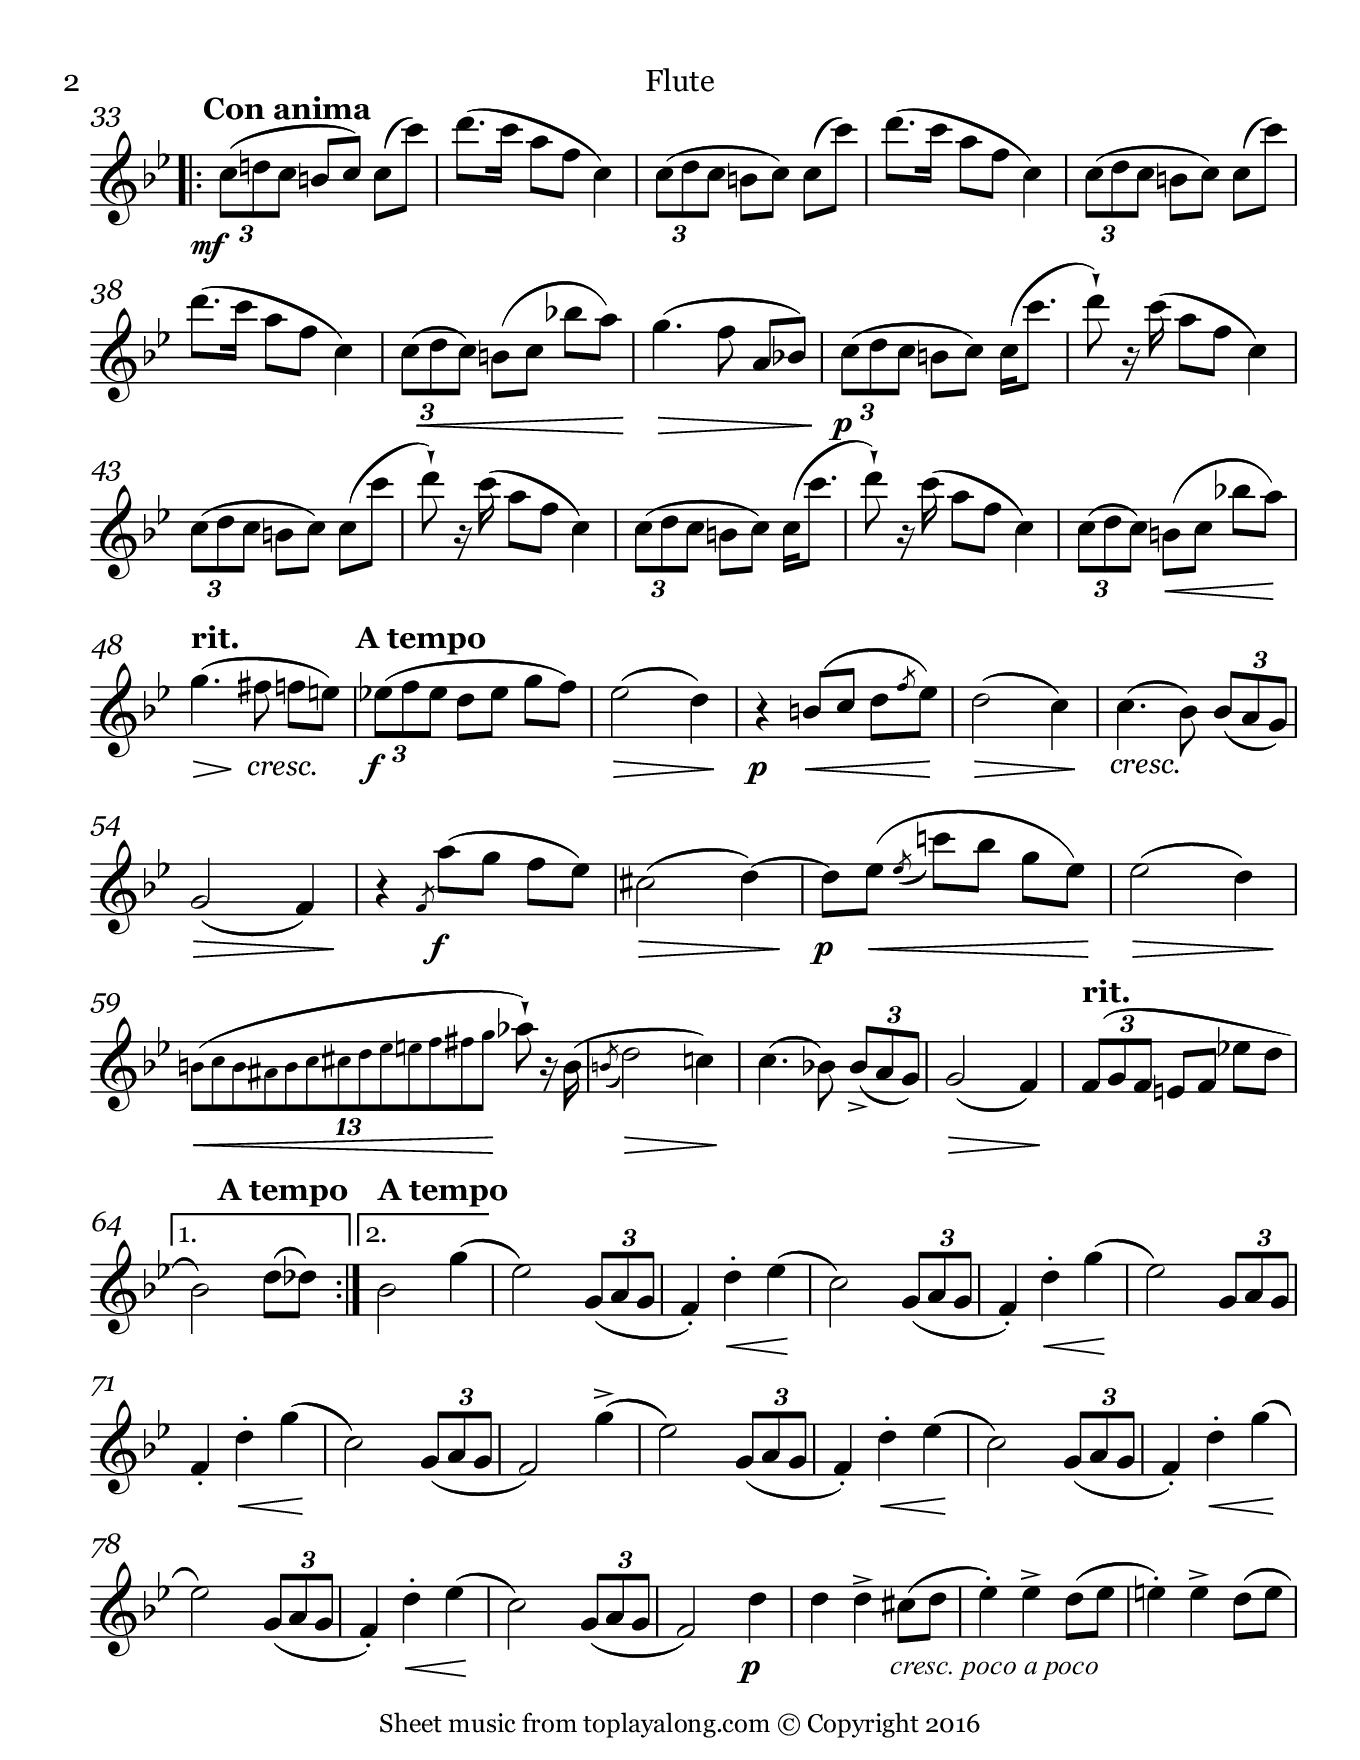 L'adieu Waltz Op. 69 No. 1 by Chopin. Sheet music for Flute, page 2.